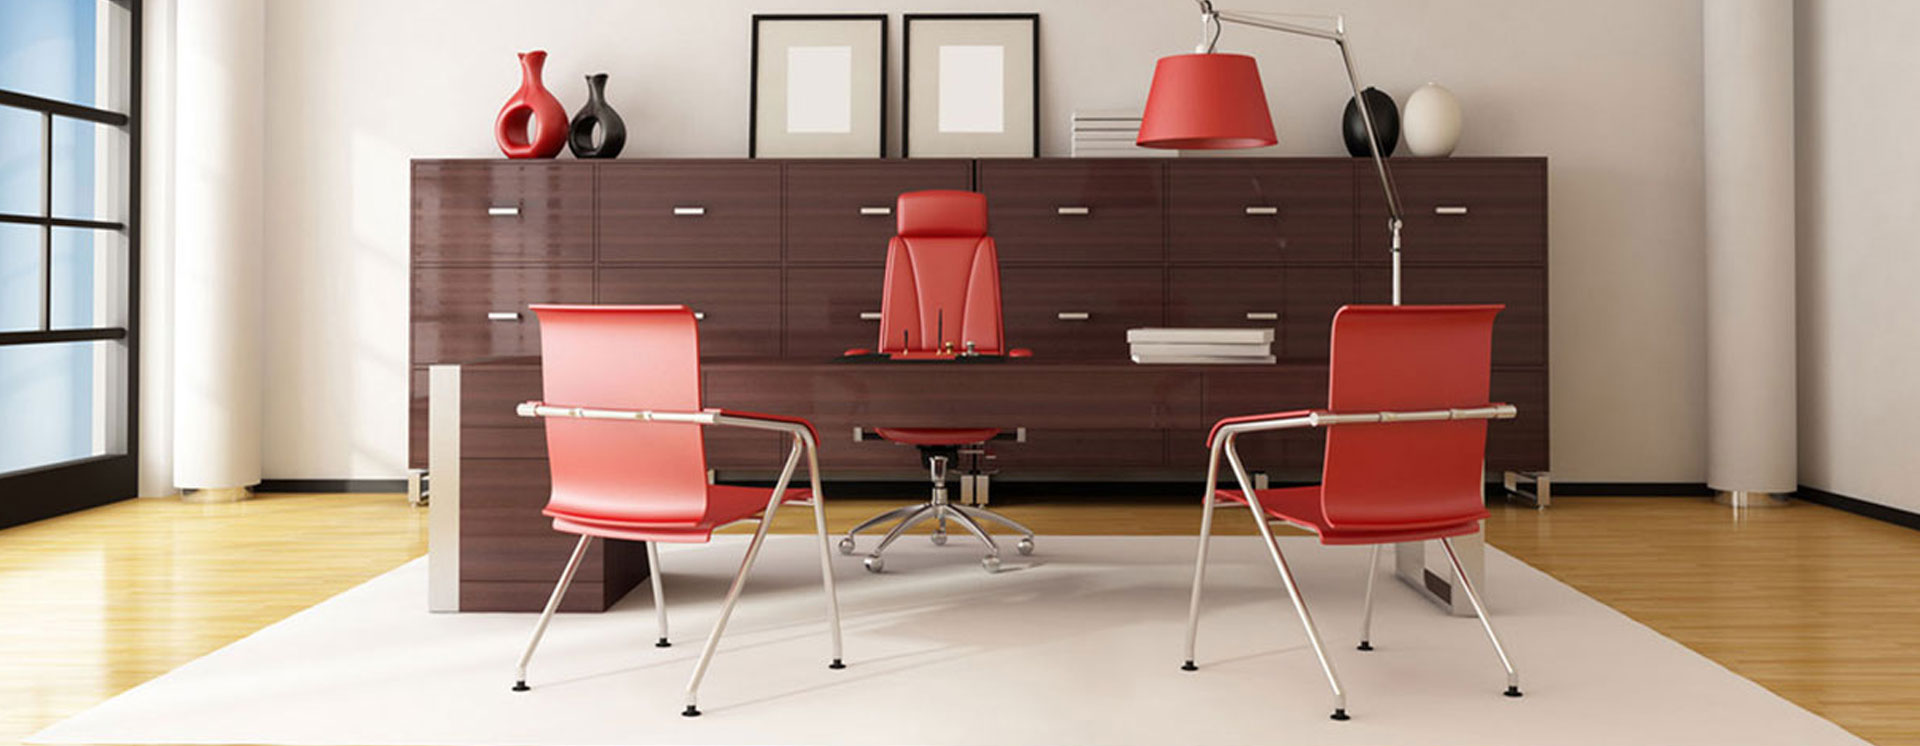 Office Furniture Manufacturers - Chairs - Tables - Cabinates-Sofa ...